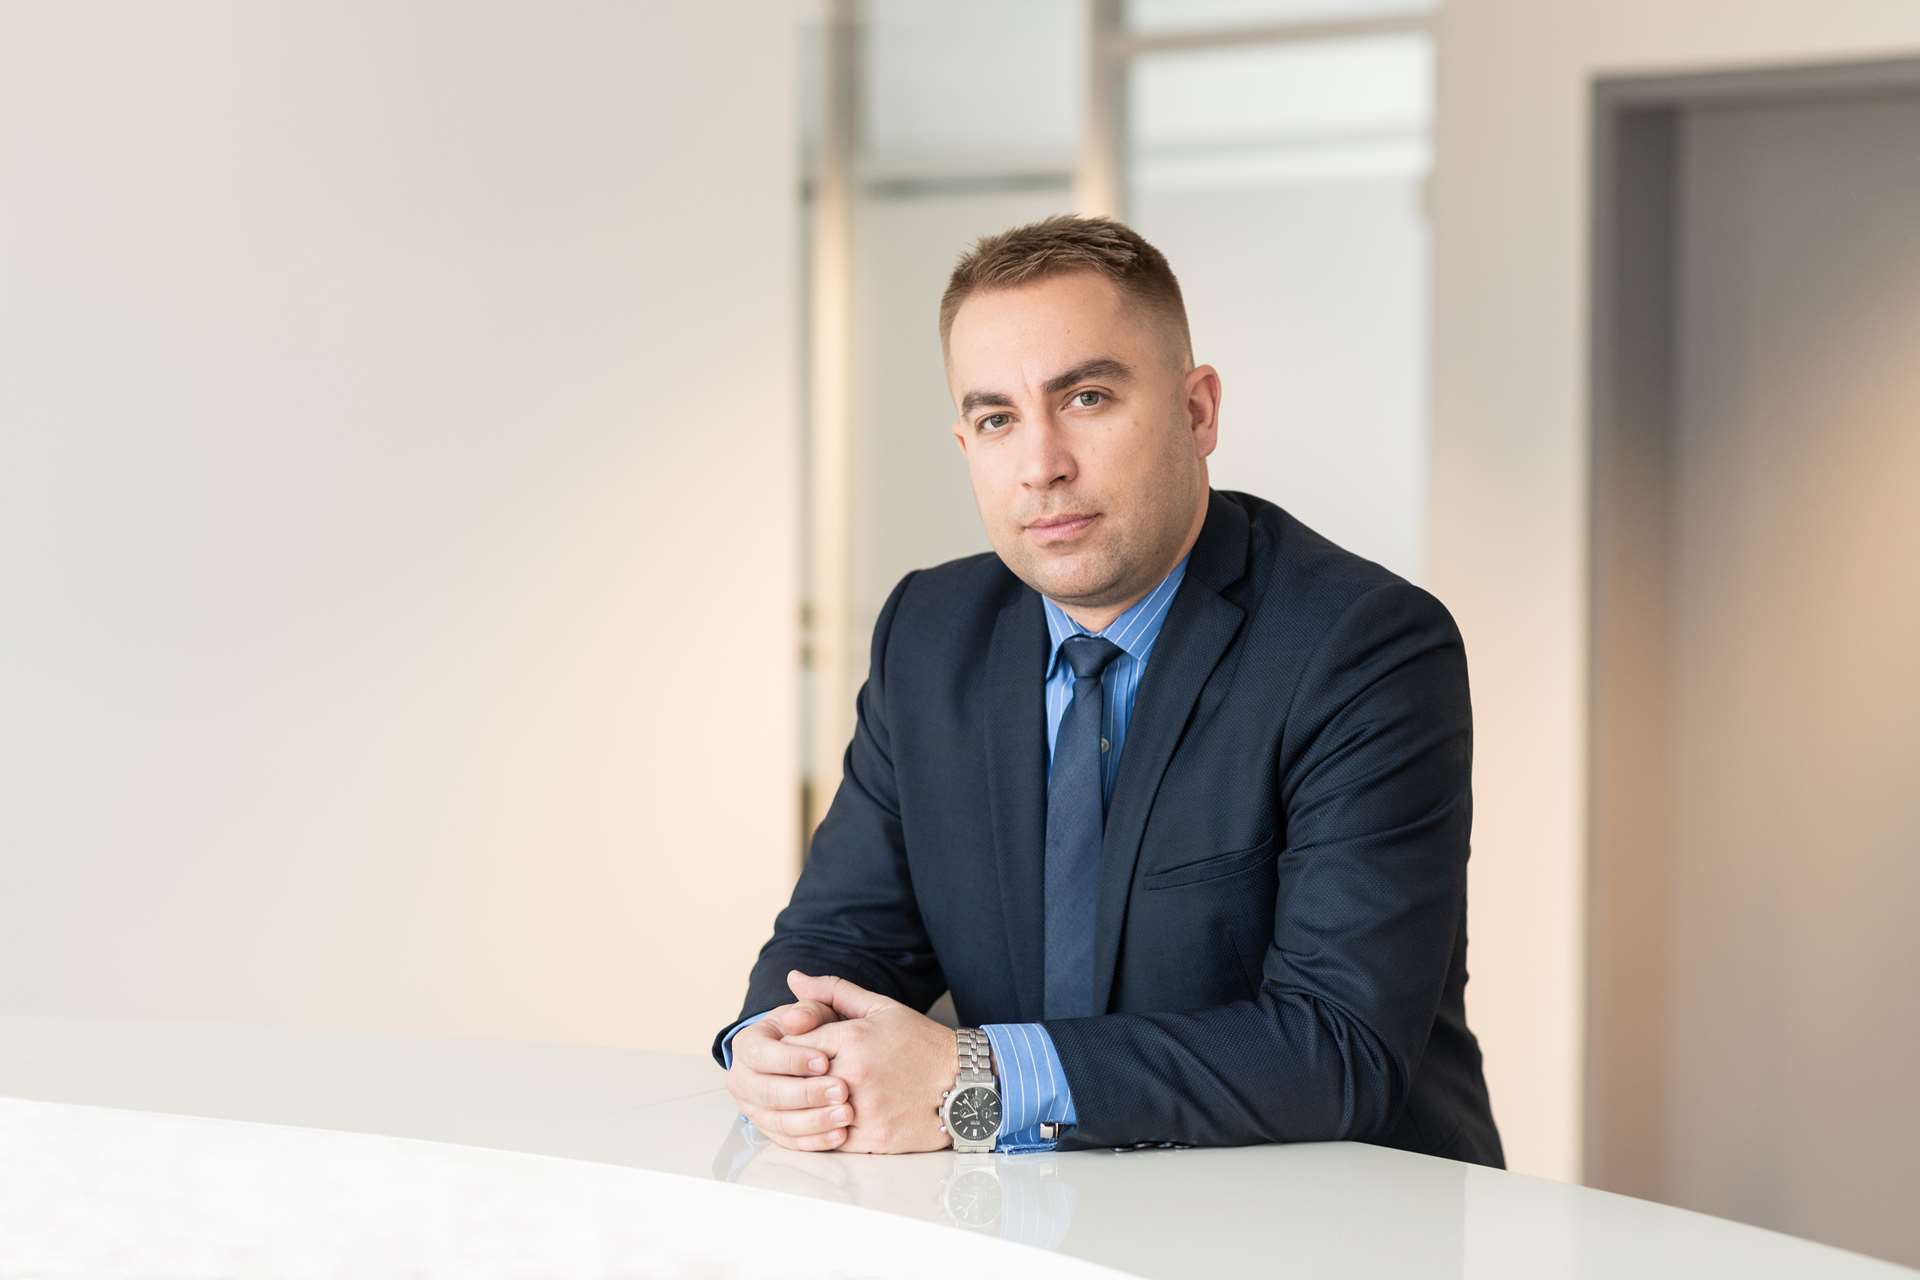 Jiří Šmatlák, Partner, Head of Legal